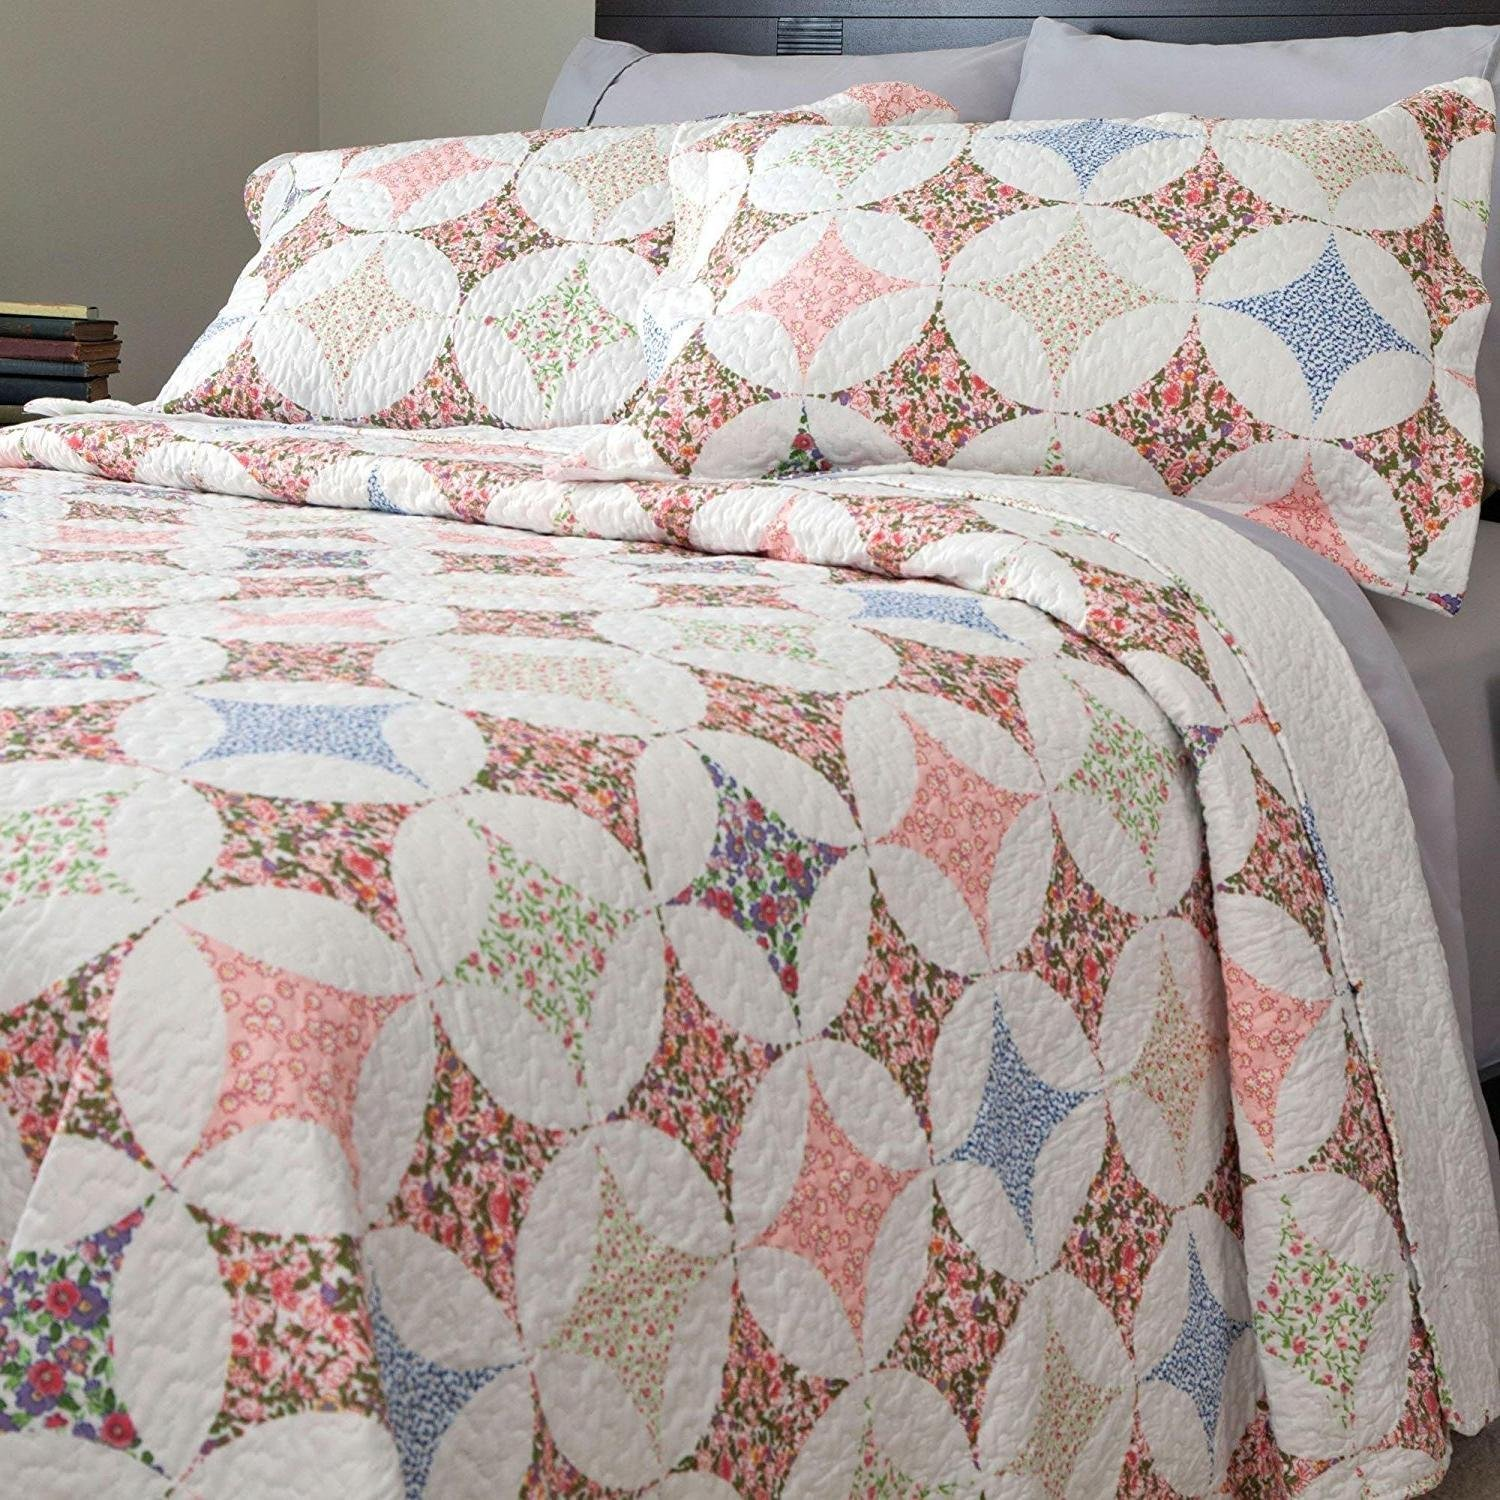 2pc Trendy Blue Pink Green White Twin Quilt Set, Polyester, Diamond Floral Themed Bedding Rainbow Modern Cabin Flower Nature Geometric Pretty Chic Rose Pretty Circles